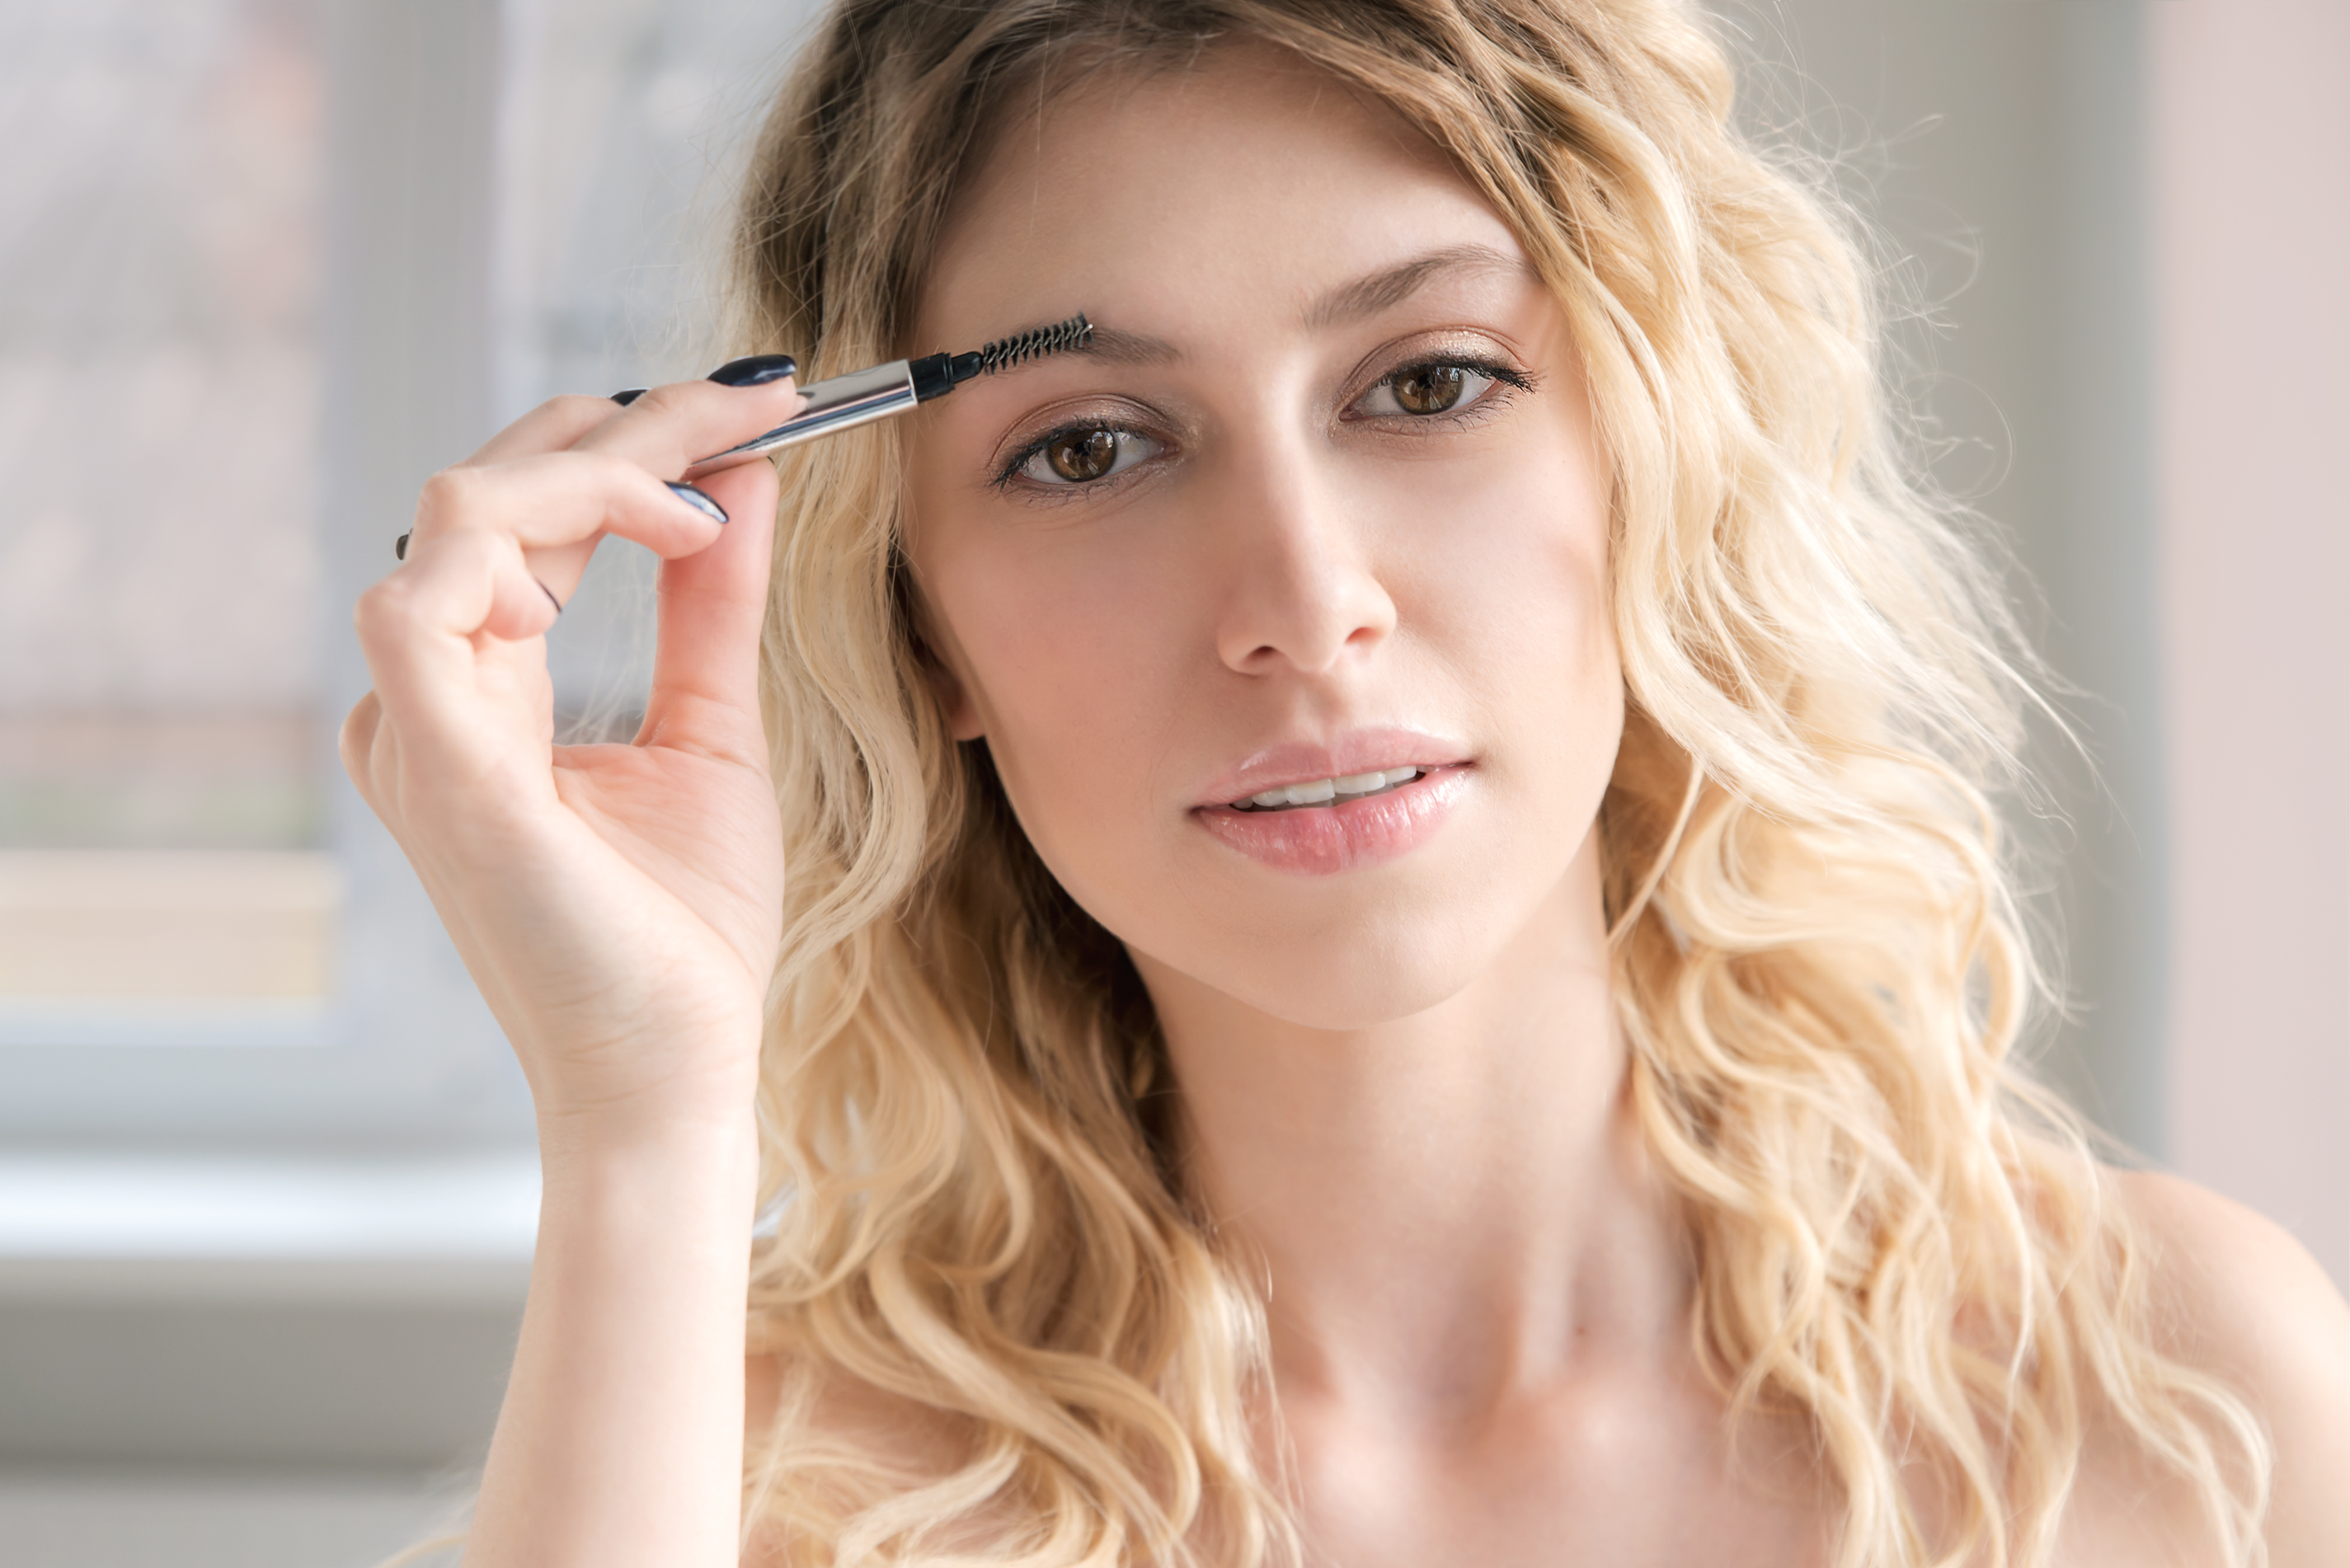 Woman with Brow Brush